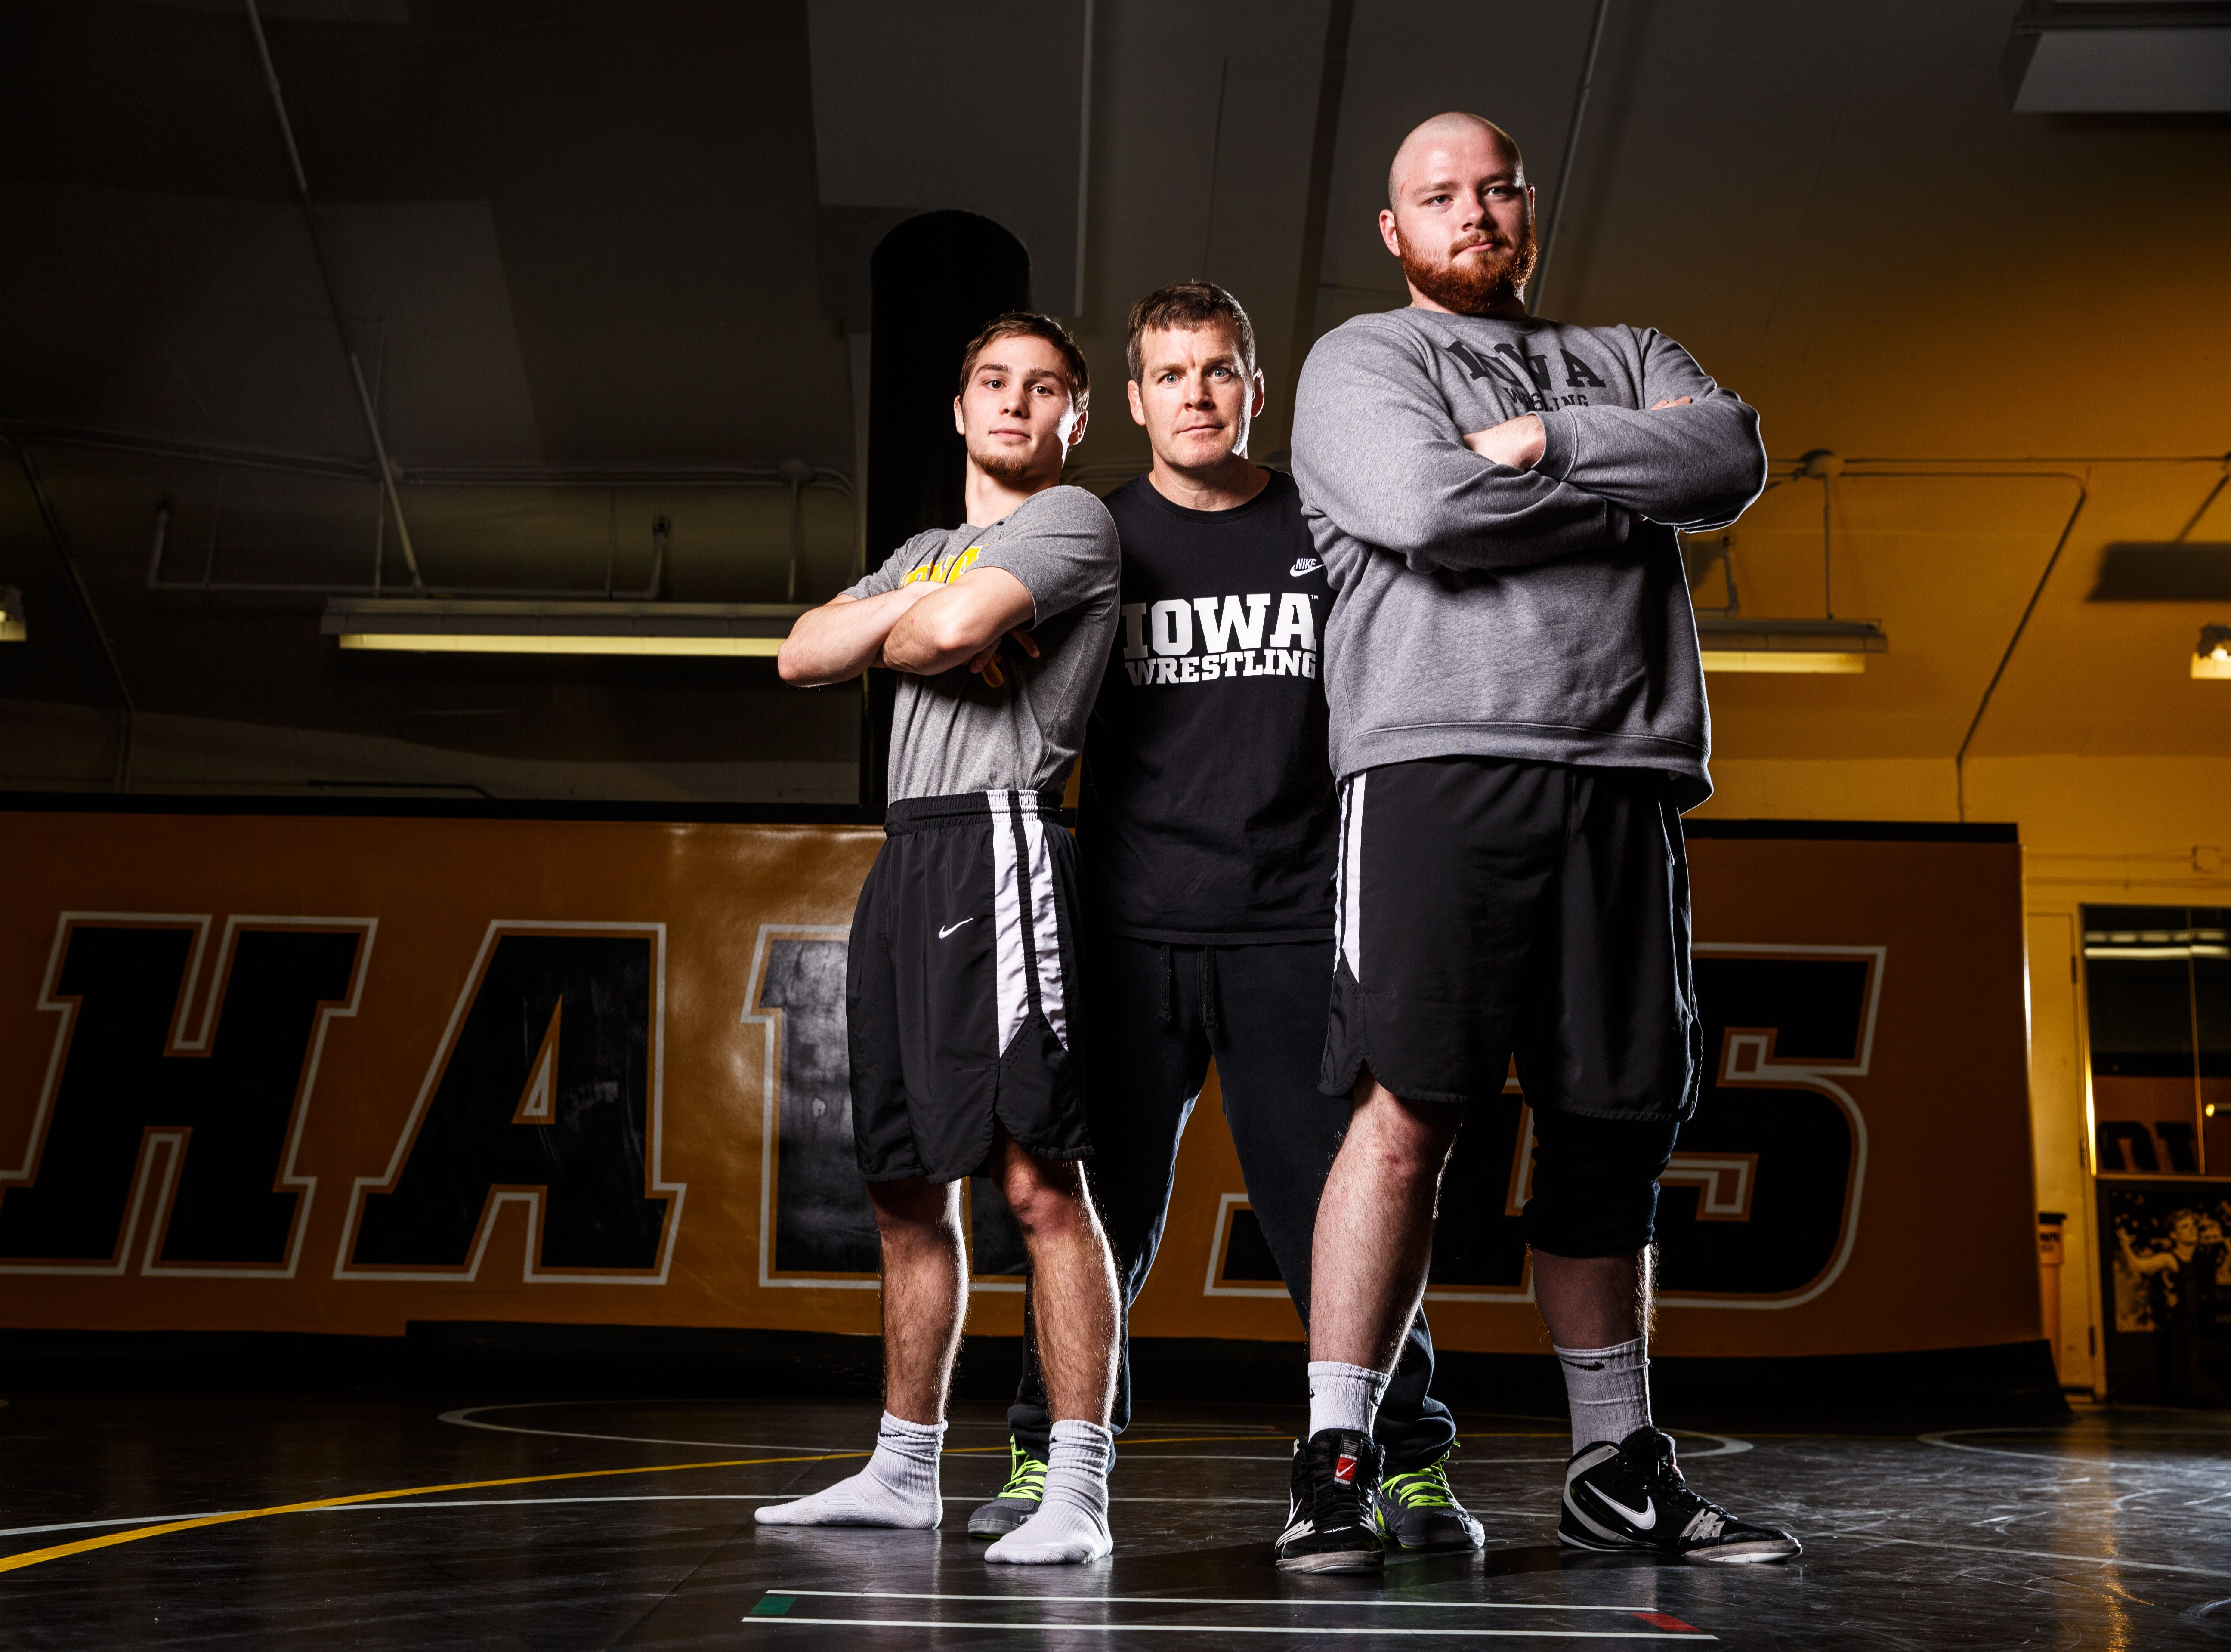 Head coach Tom Brands steps into a photo with Iowa wrestlers Spencer Lee and Sam Stoll during Iowa wrestling media dayMonday, Nov. 5, 2018.